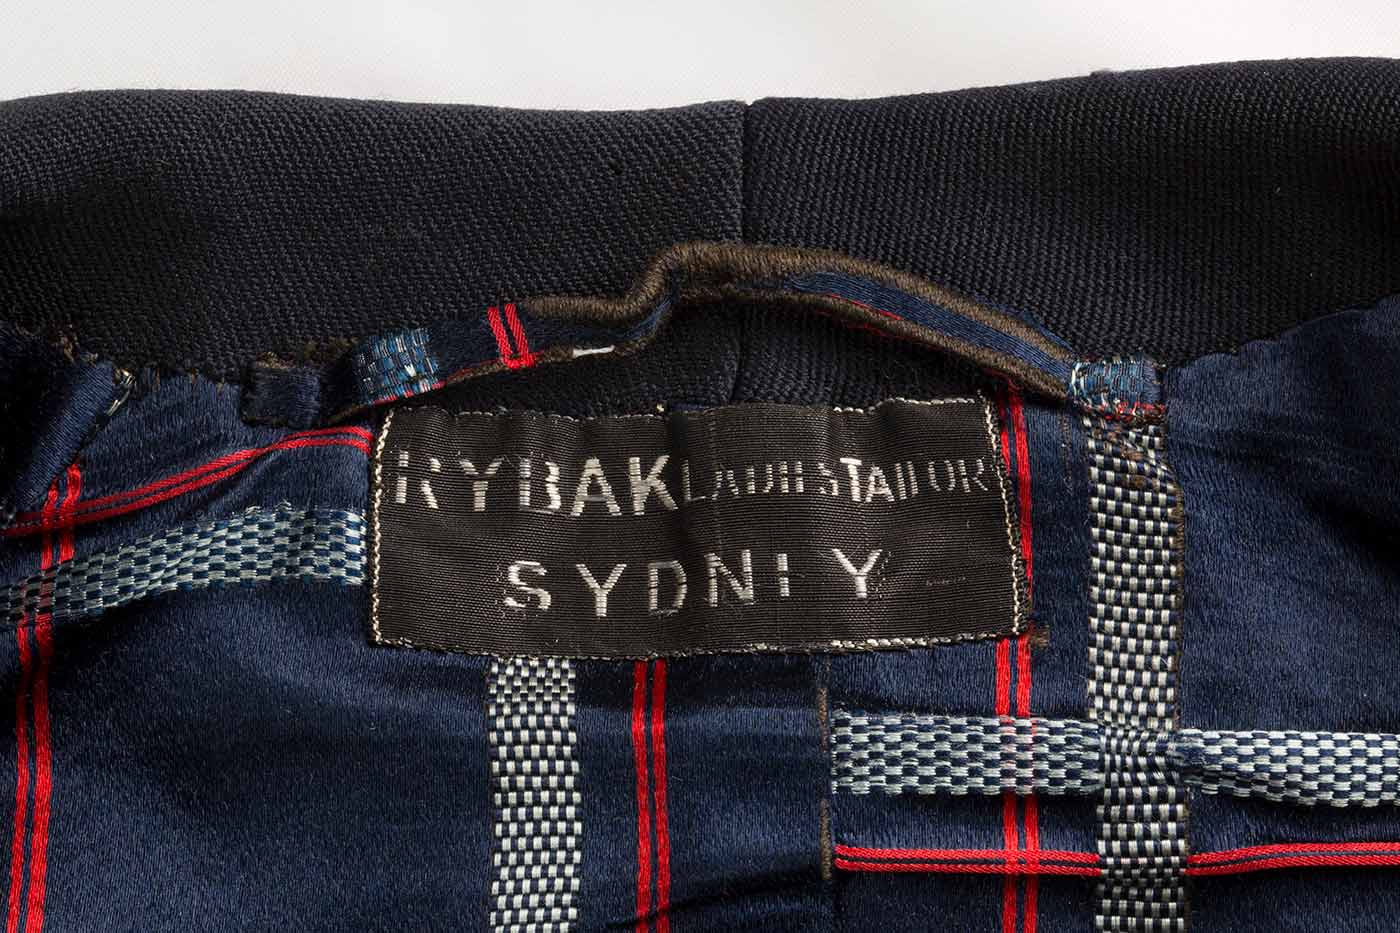 Navy, white and red checked satin lining of navy blue wool jacket with label that reads: 'RYBAK LADIES TAILOR / SYDNEY'.